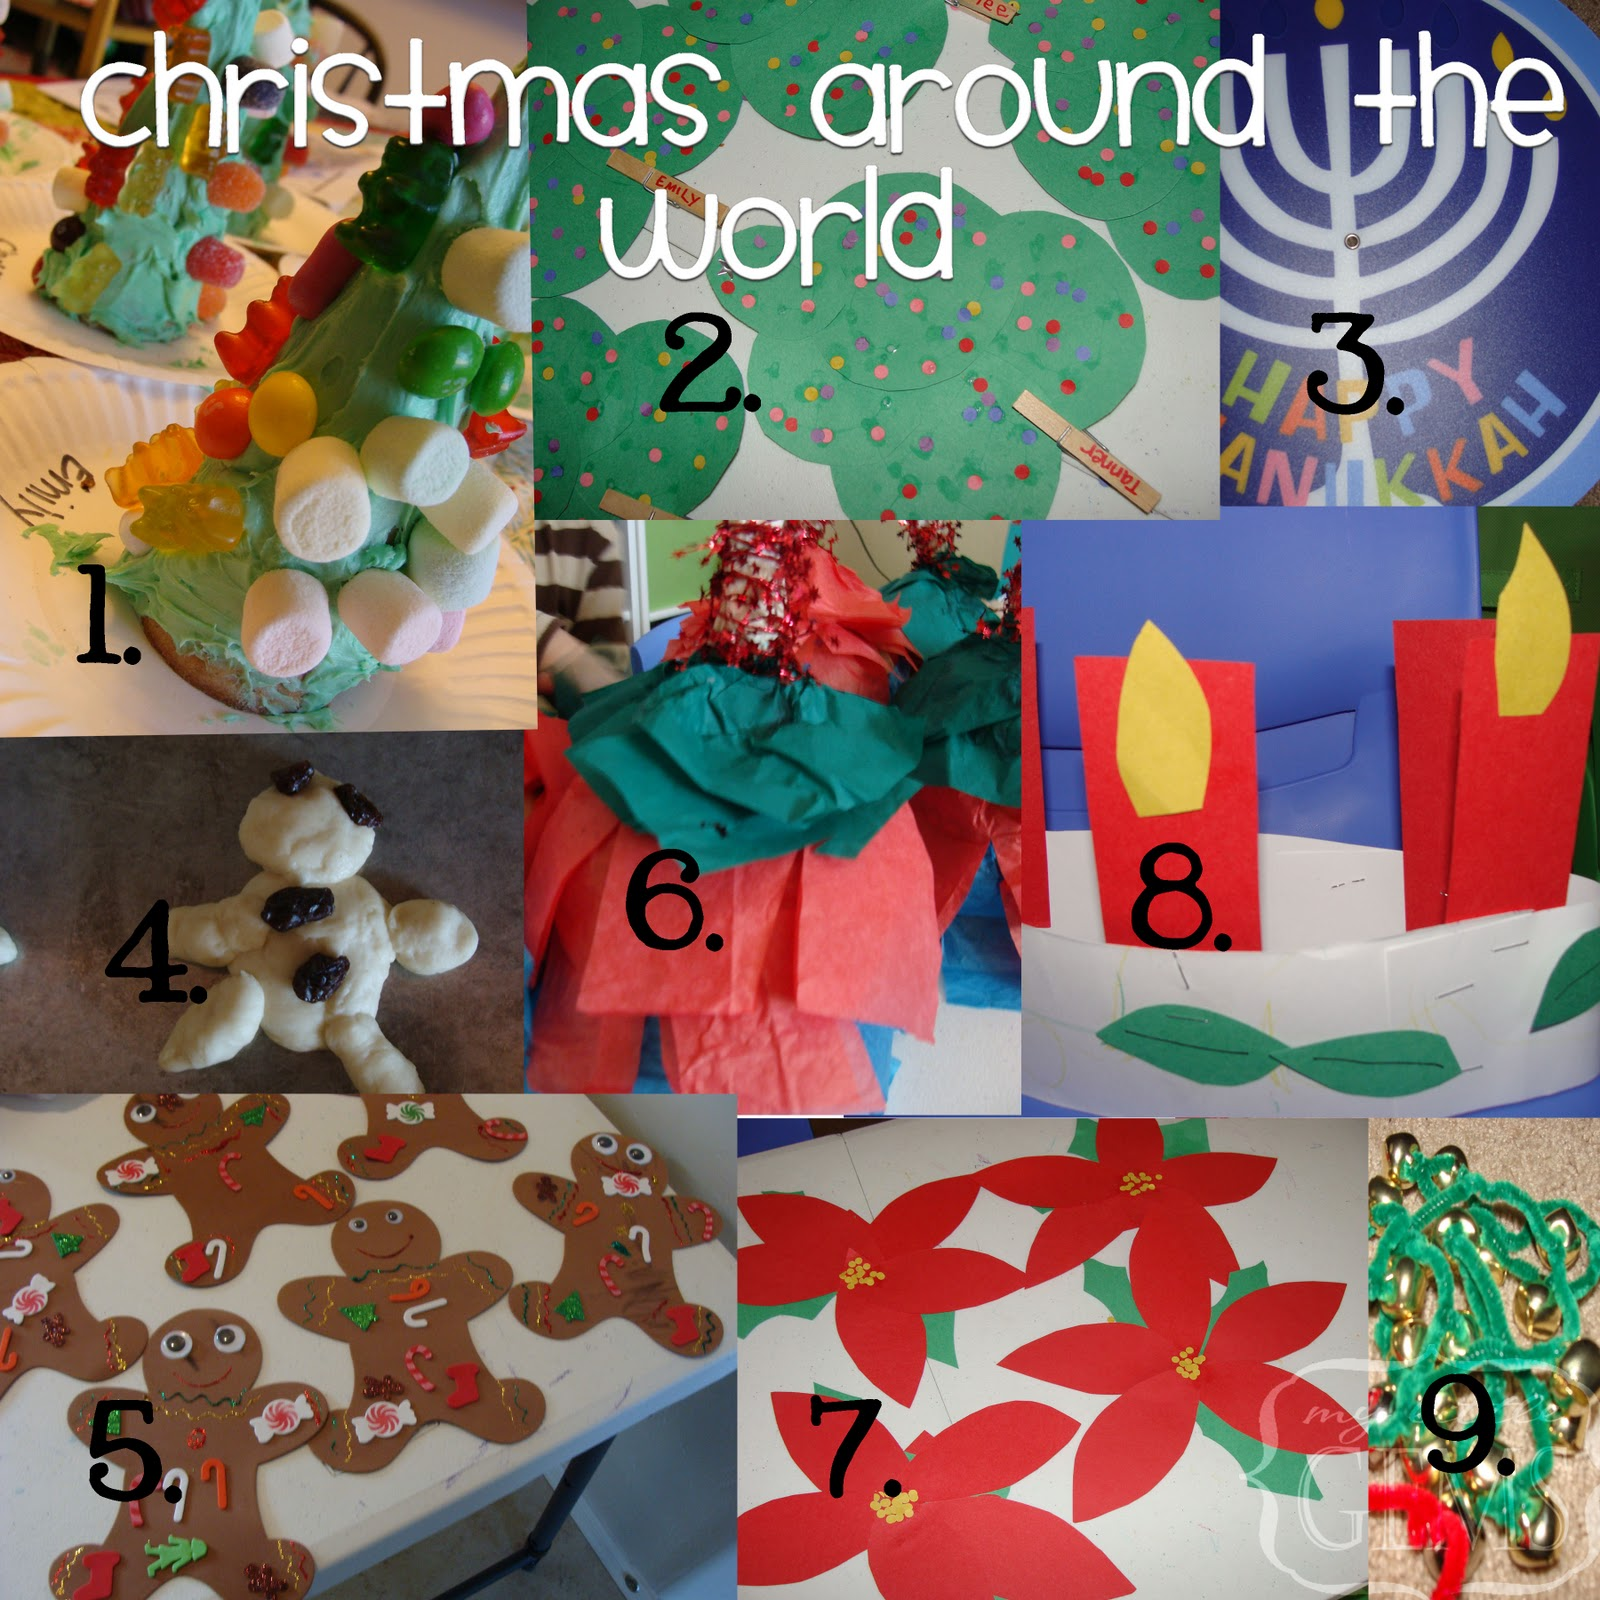 christmas around the world ideas - Christmas Around The World Decorations For A Party